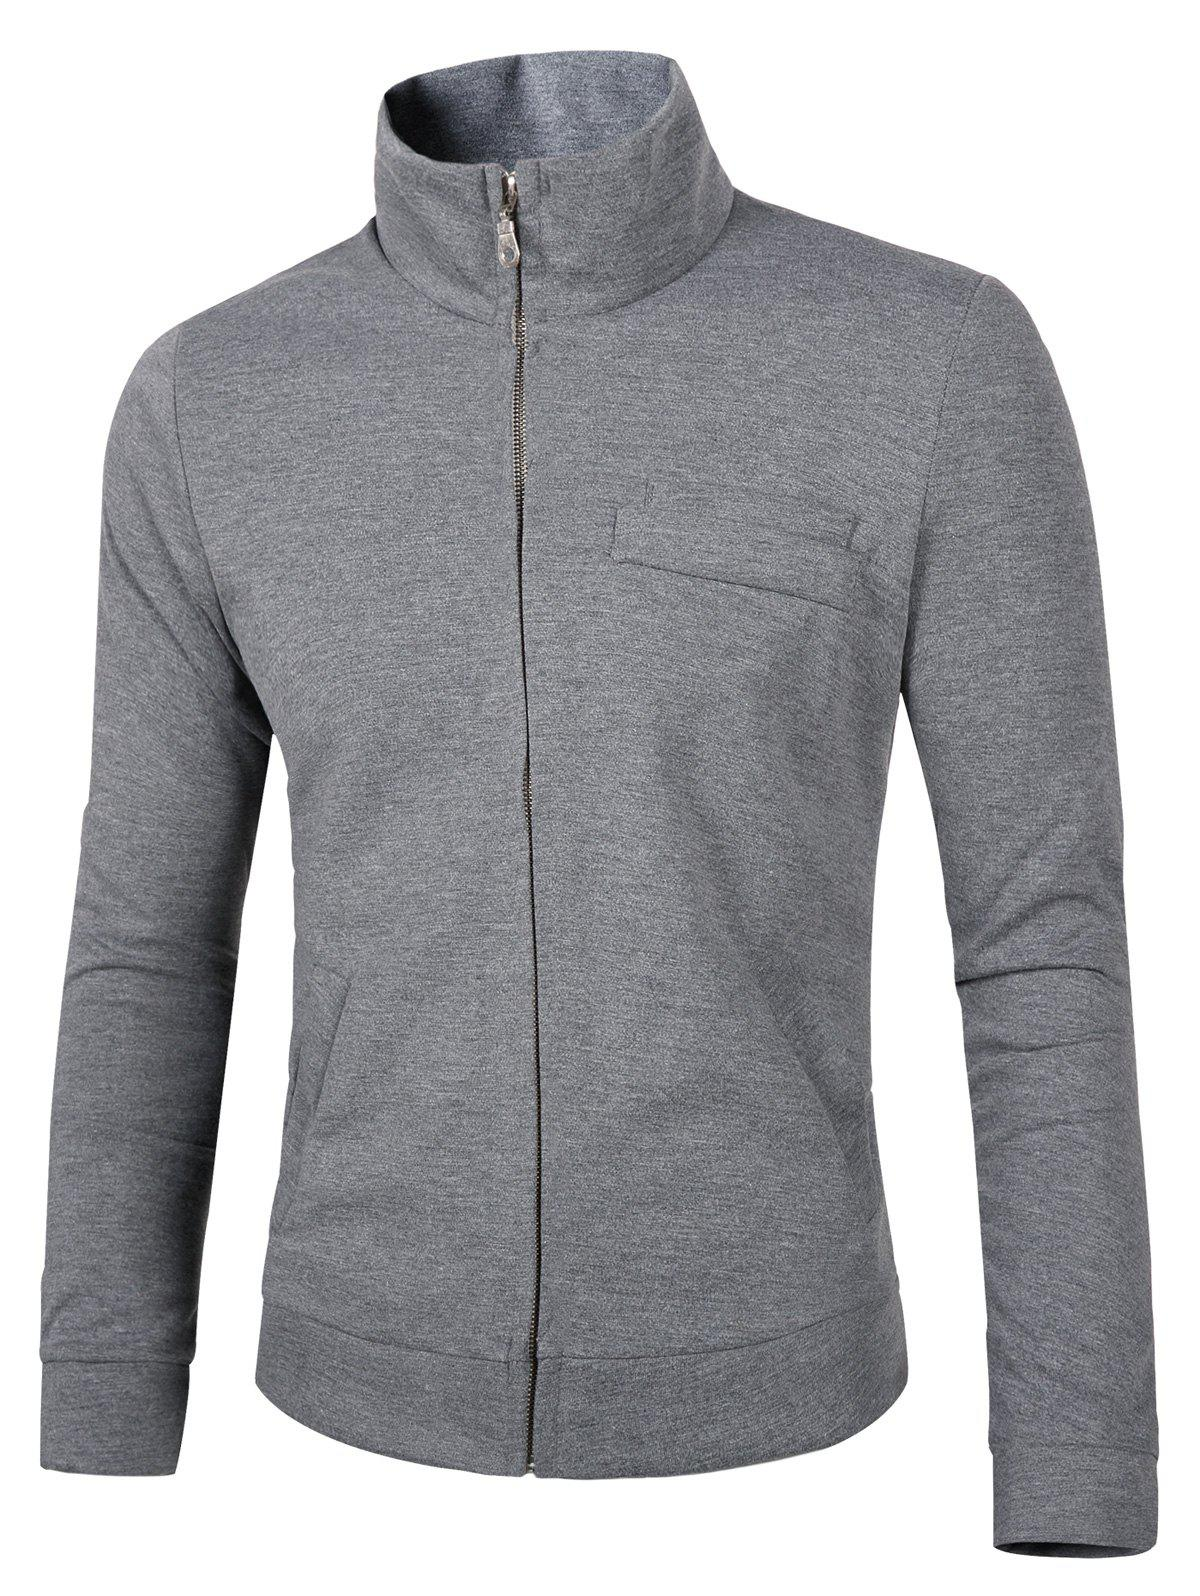 Solid Color Stand Collar Slimming Zip-Up Men's Jacket - GRAY M